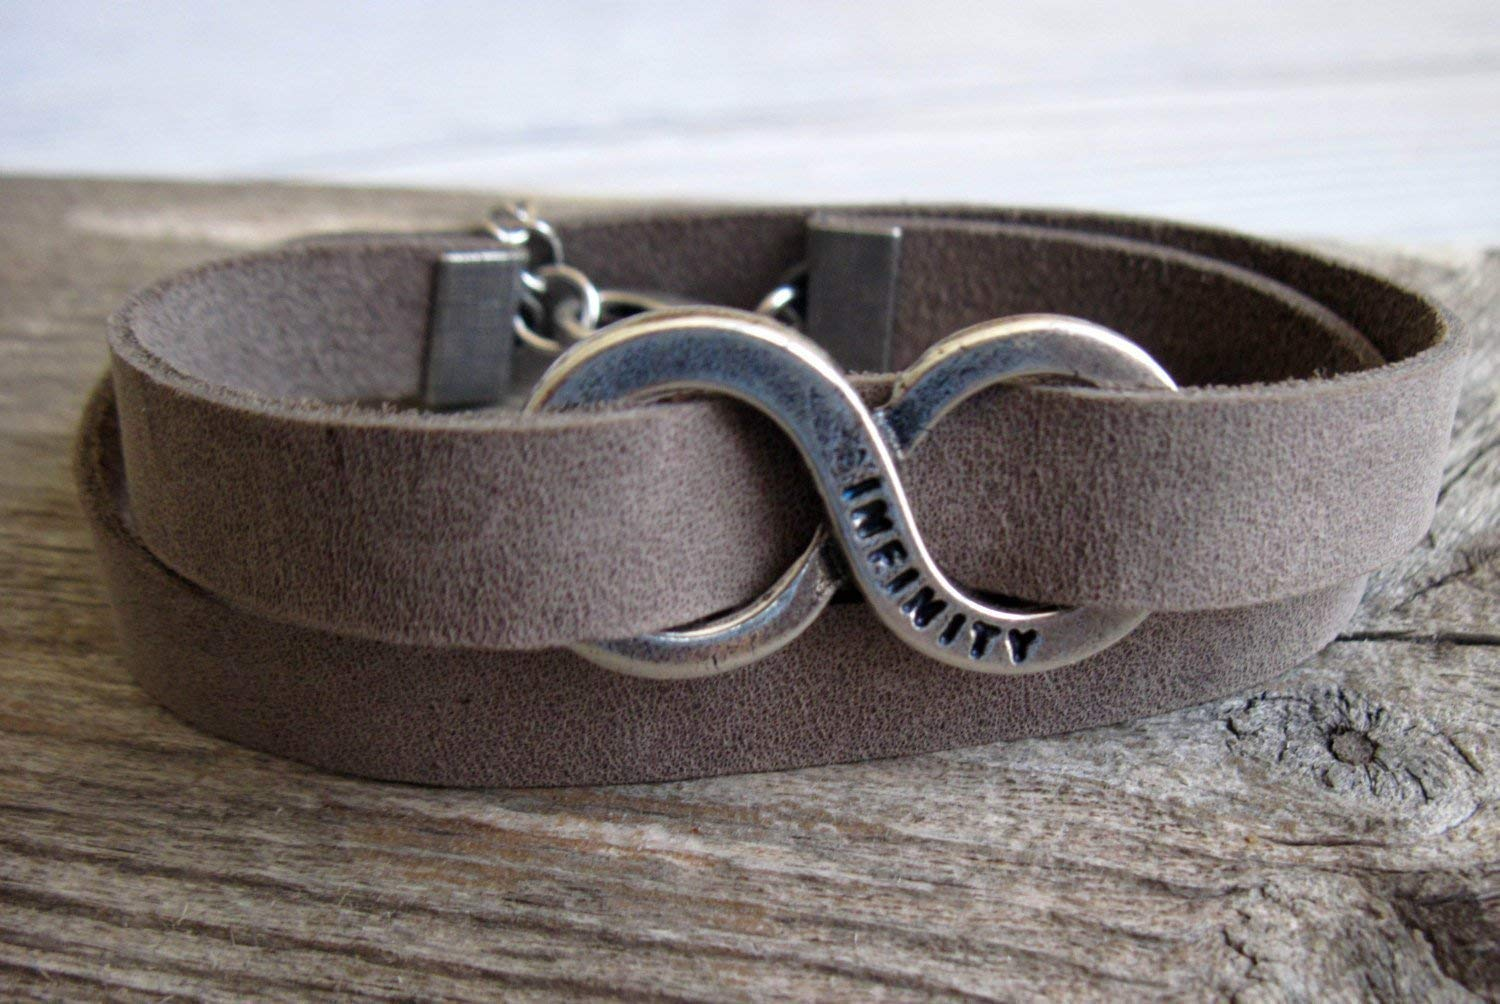 Infinity Bracelet For Men Handmade Wrap Gray Genuine Leather Bracelet For Men Set With Silver Plated Infinity Pendant By Galis Jewelry